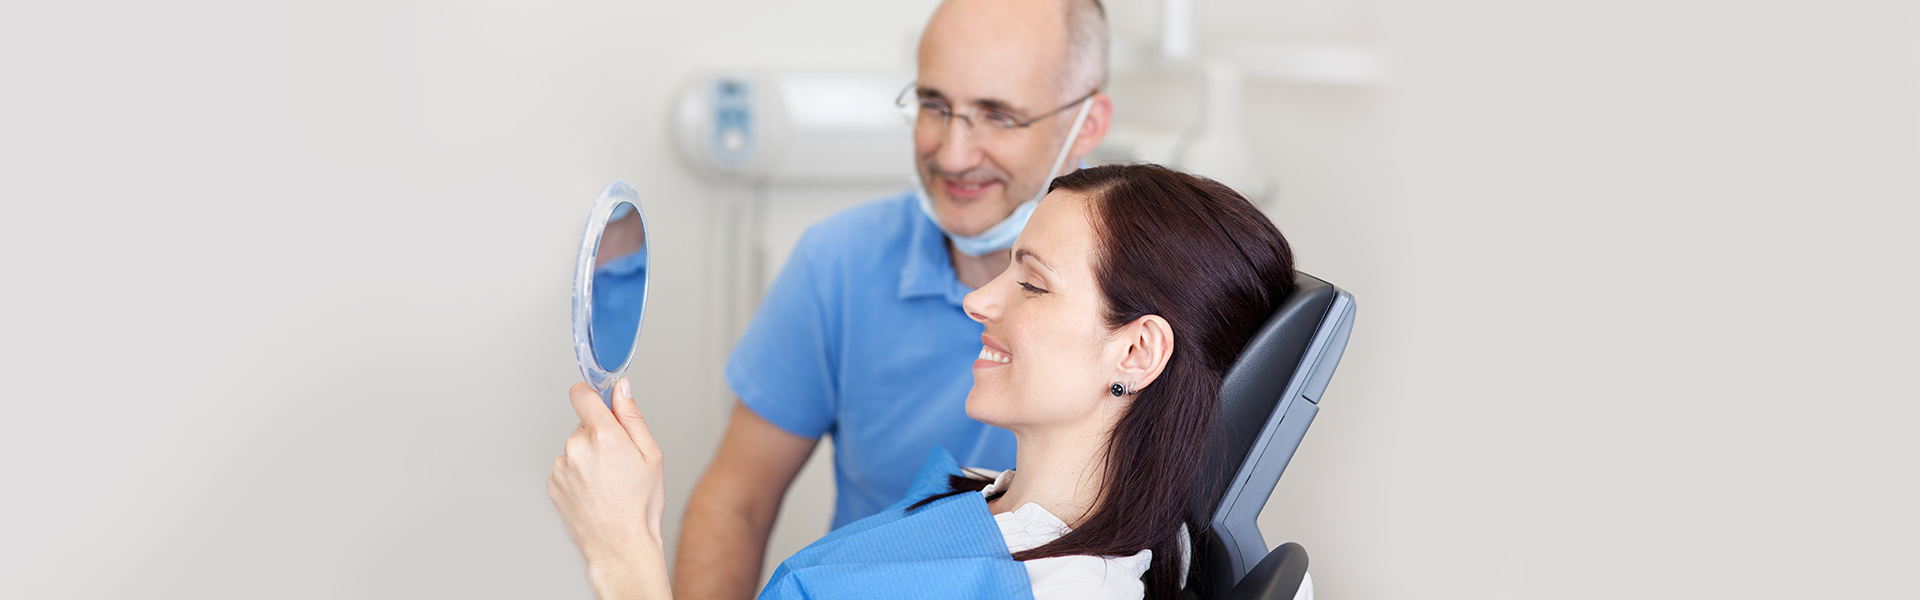 Which Option Is Best for Replacing Missing Teeth in Your Mouth?